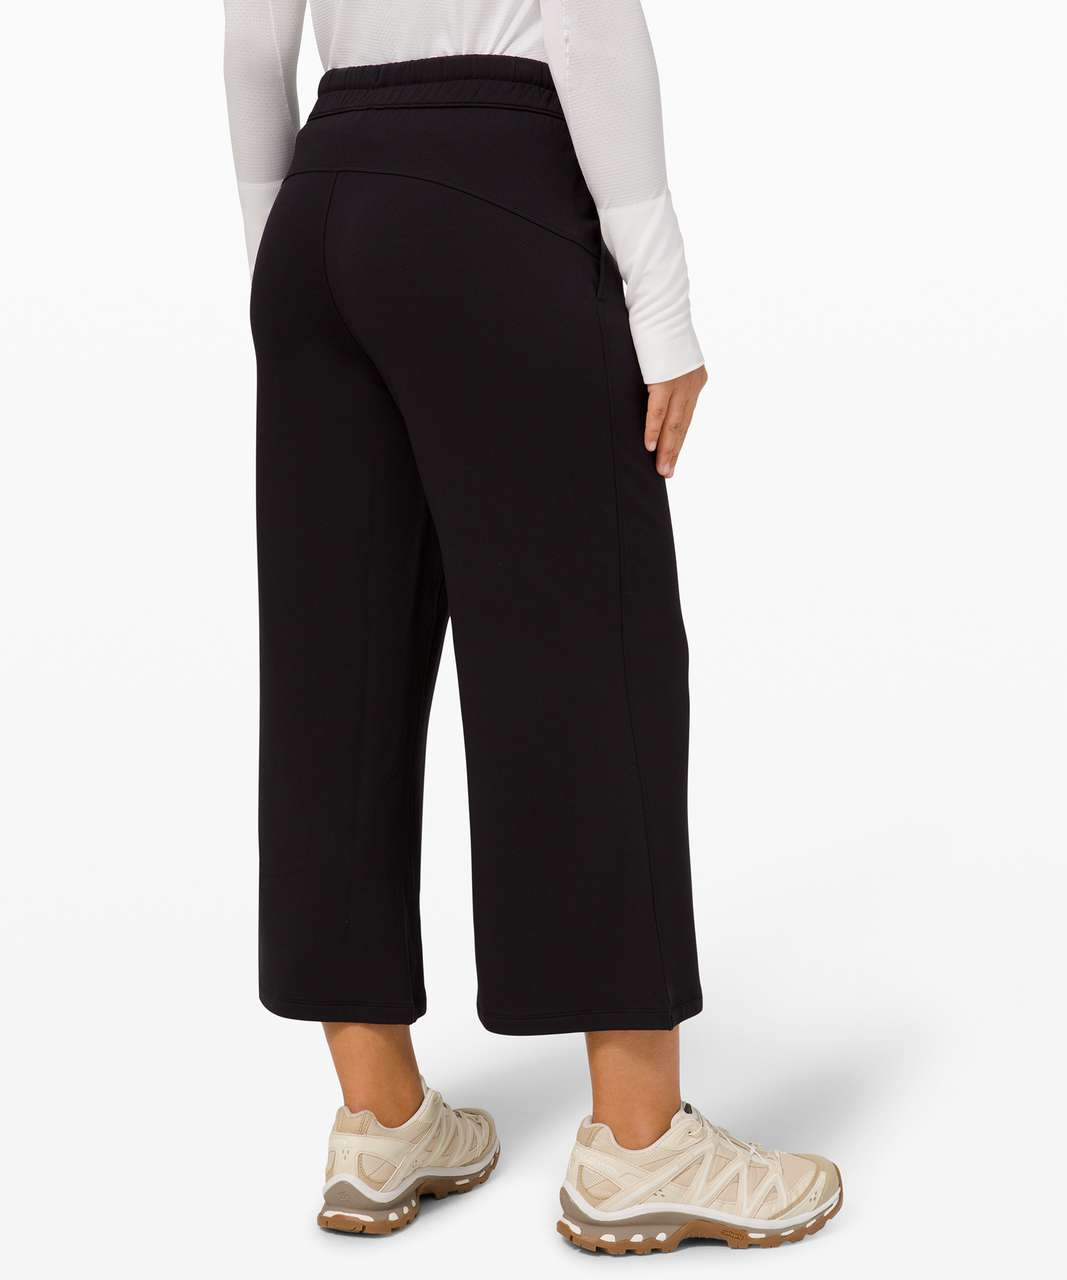 Lululemon Bound to Bliss High-Rise 7/8 Pant - Black